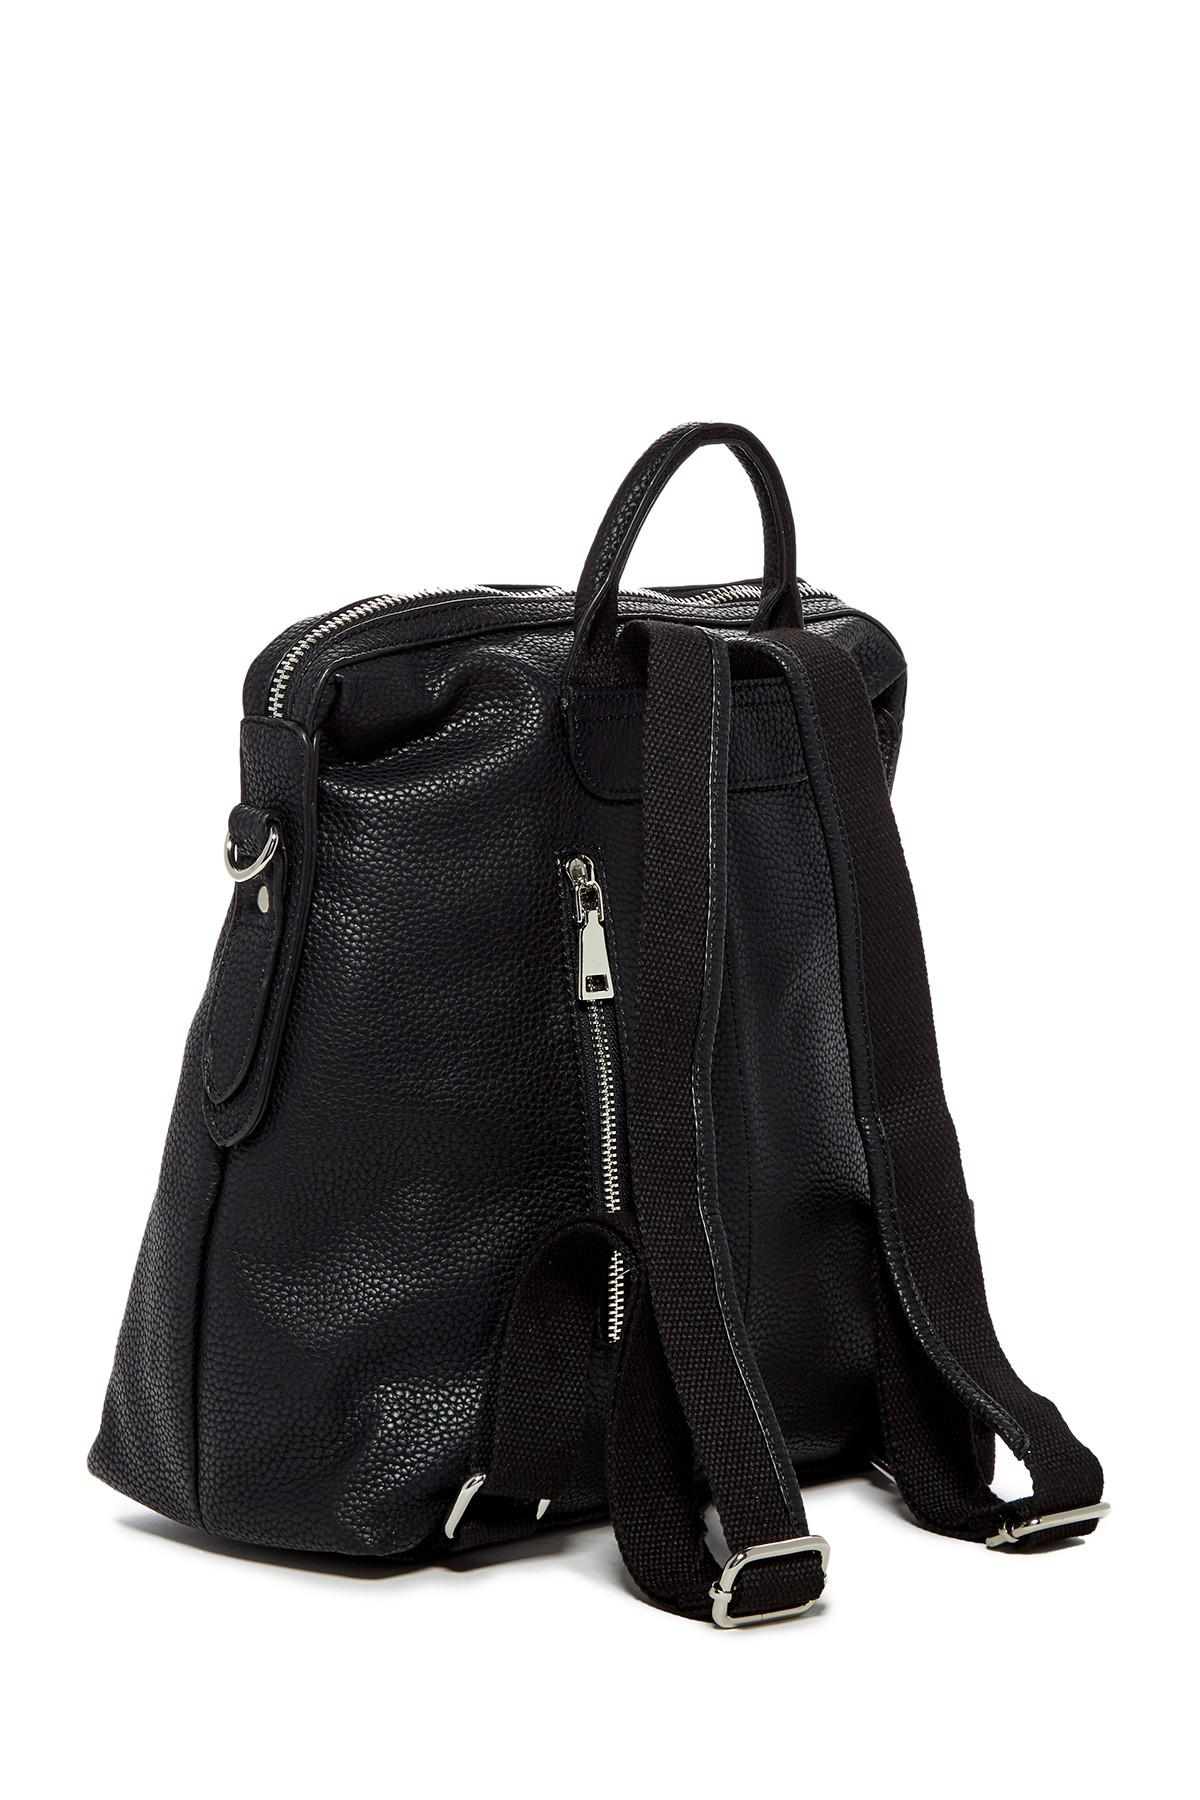 46aeb9a3ad Lyst - Urban Expressions Kenzie Vegan Leather Backpack in Black